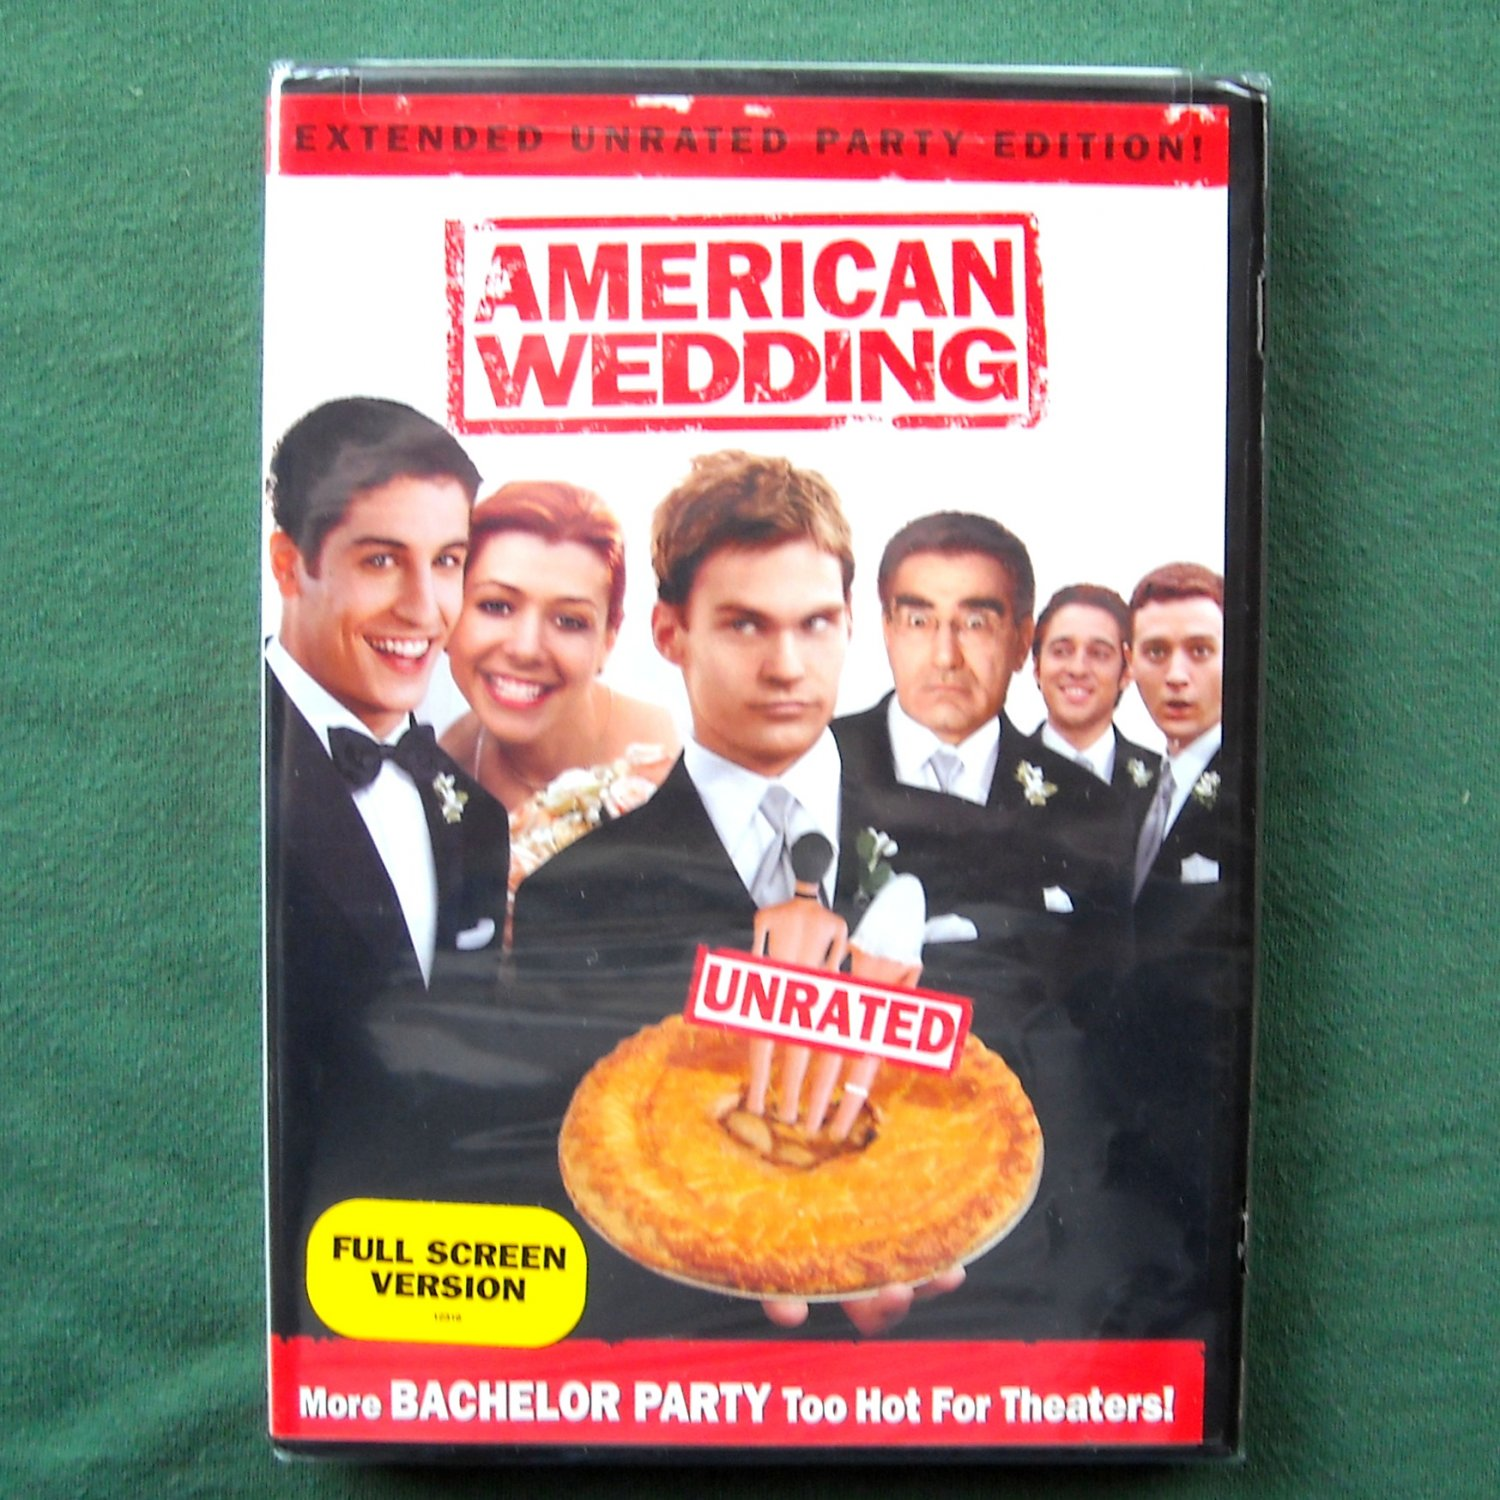 American Wedding unrated DVD